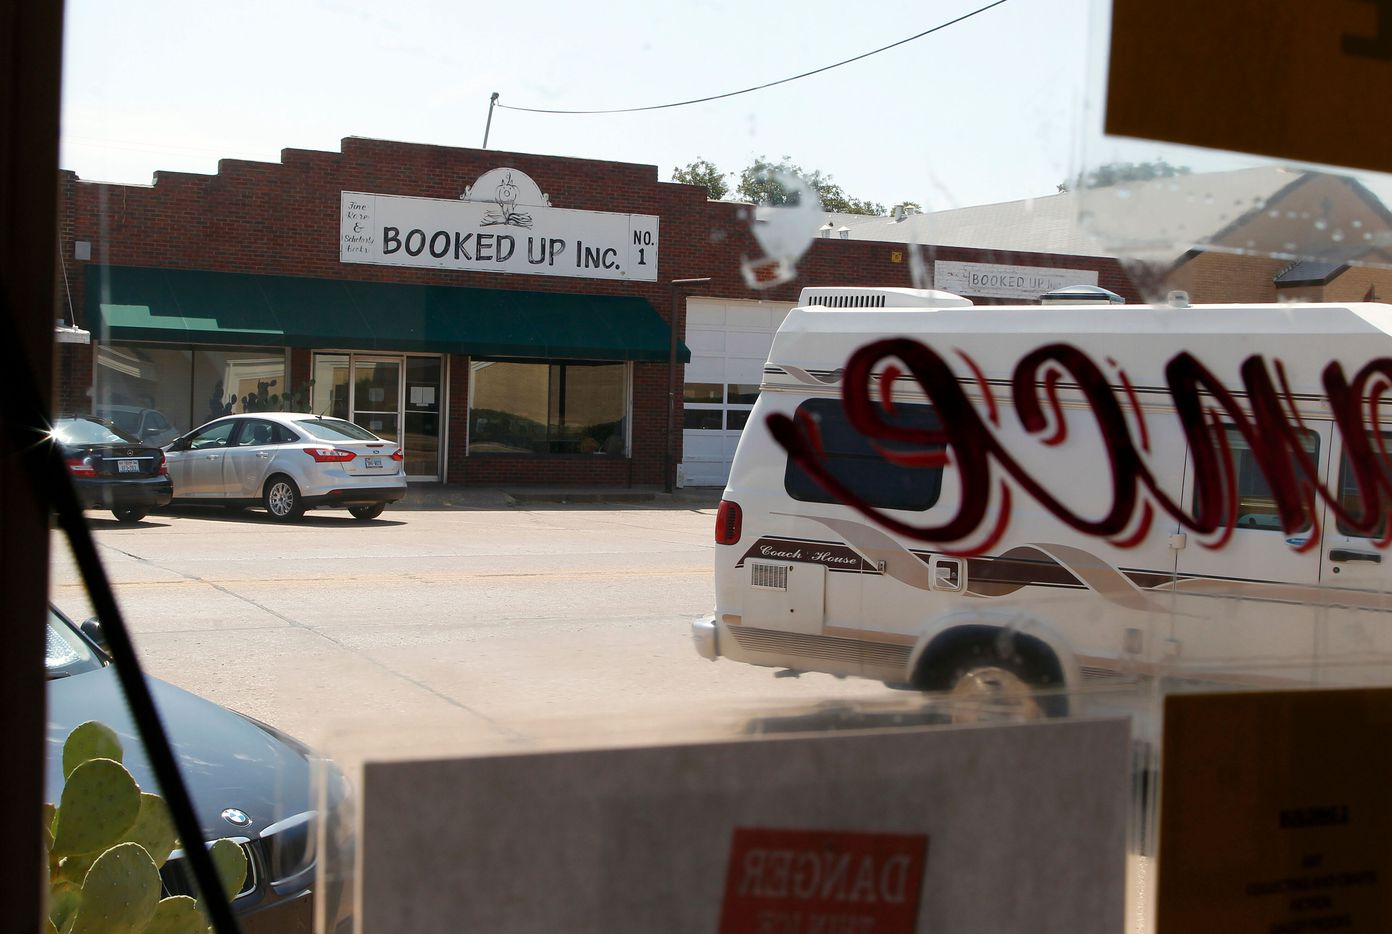 An August 2012 view from inside Booked Up Inc. #2, looking towards Booked Up Inc. #1 -- just two of the four bookstores owned by Larry McMurtry in downtown Archer City, TX. That year he sold off 200,000 books from his private collection, emptying out all but one of the storefronts.